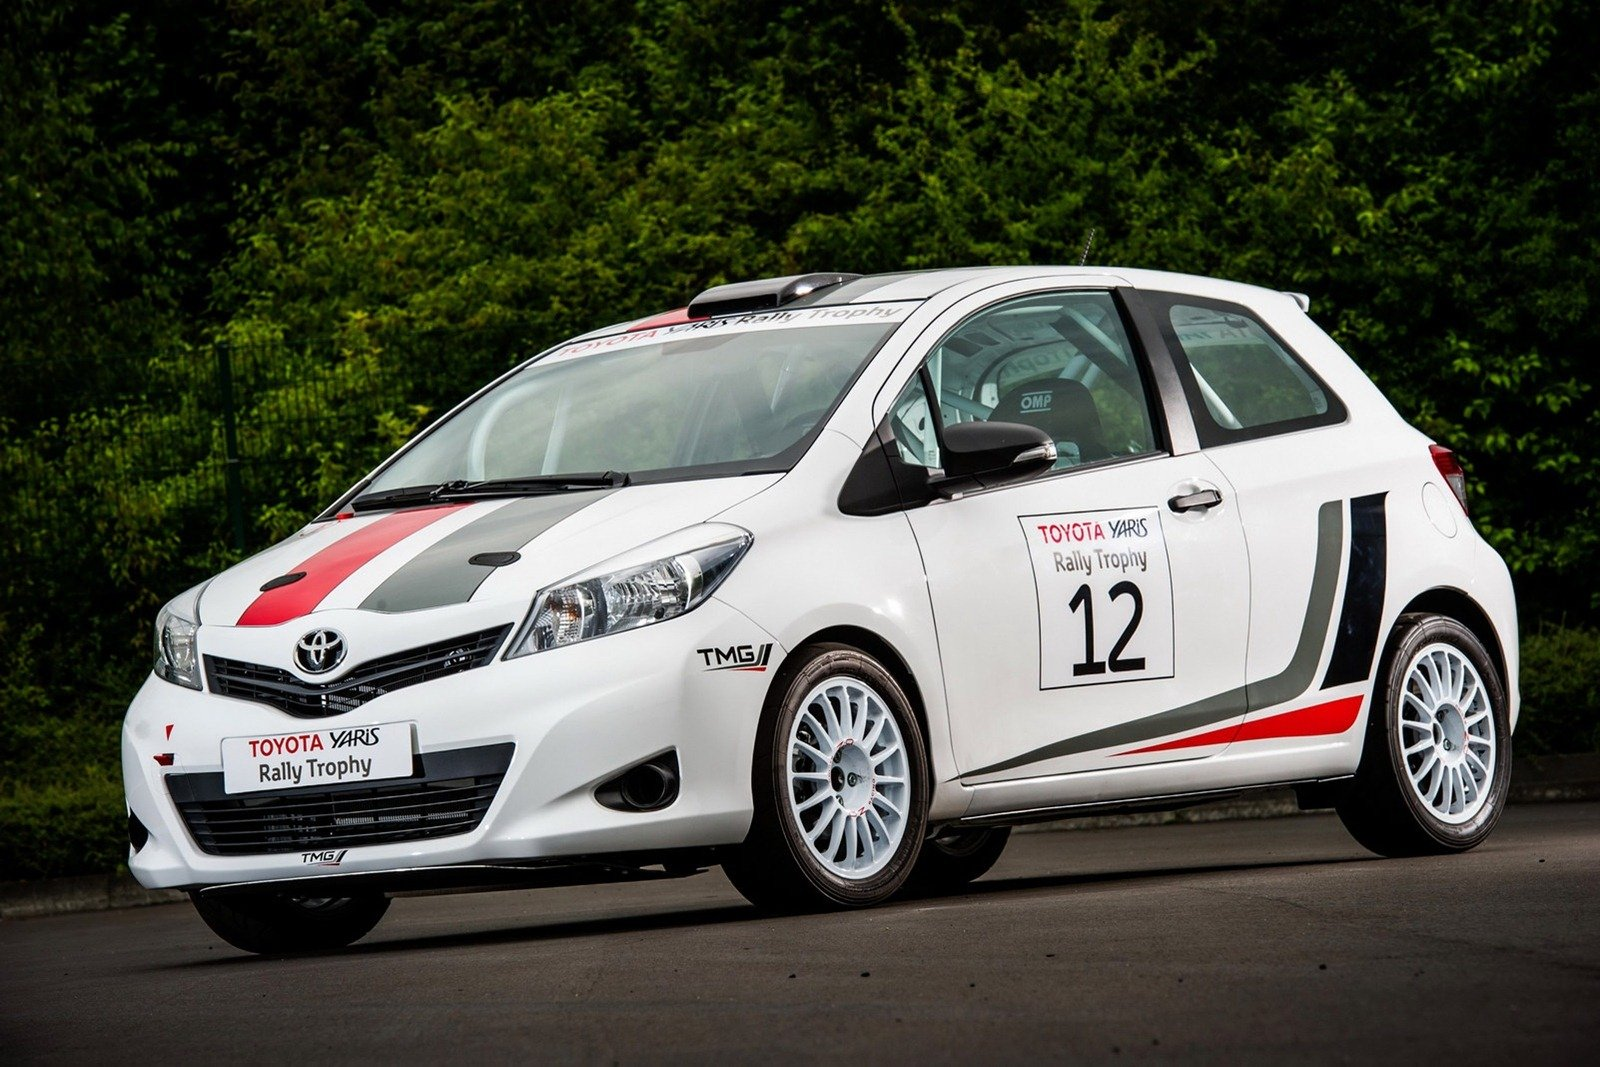 2013 toyota yaris r1a rally car review top speed. Black Bedroom Furniture Sets. Home Design Ideas